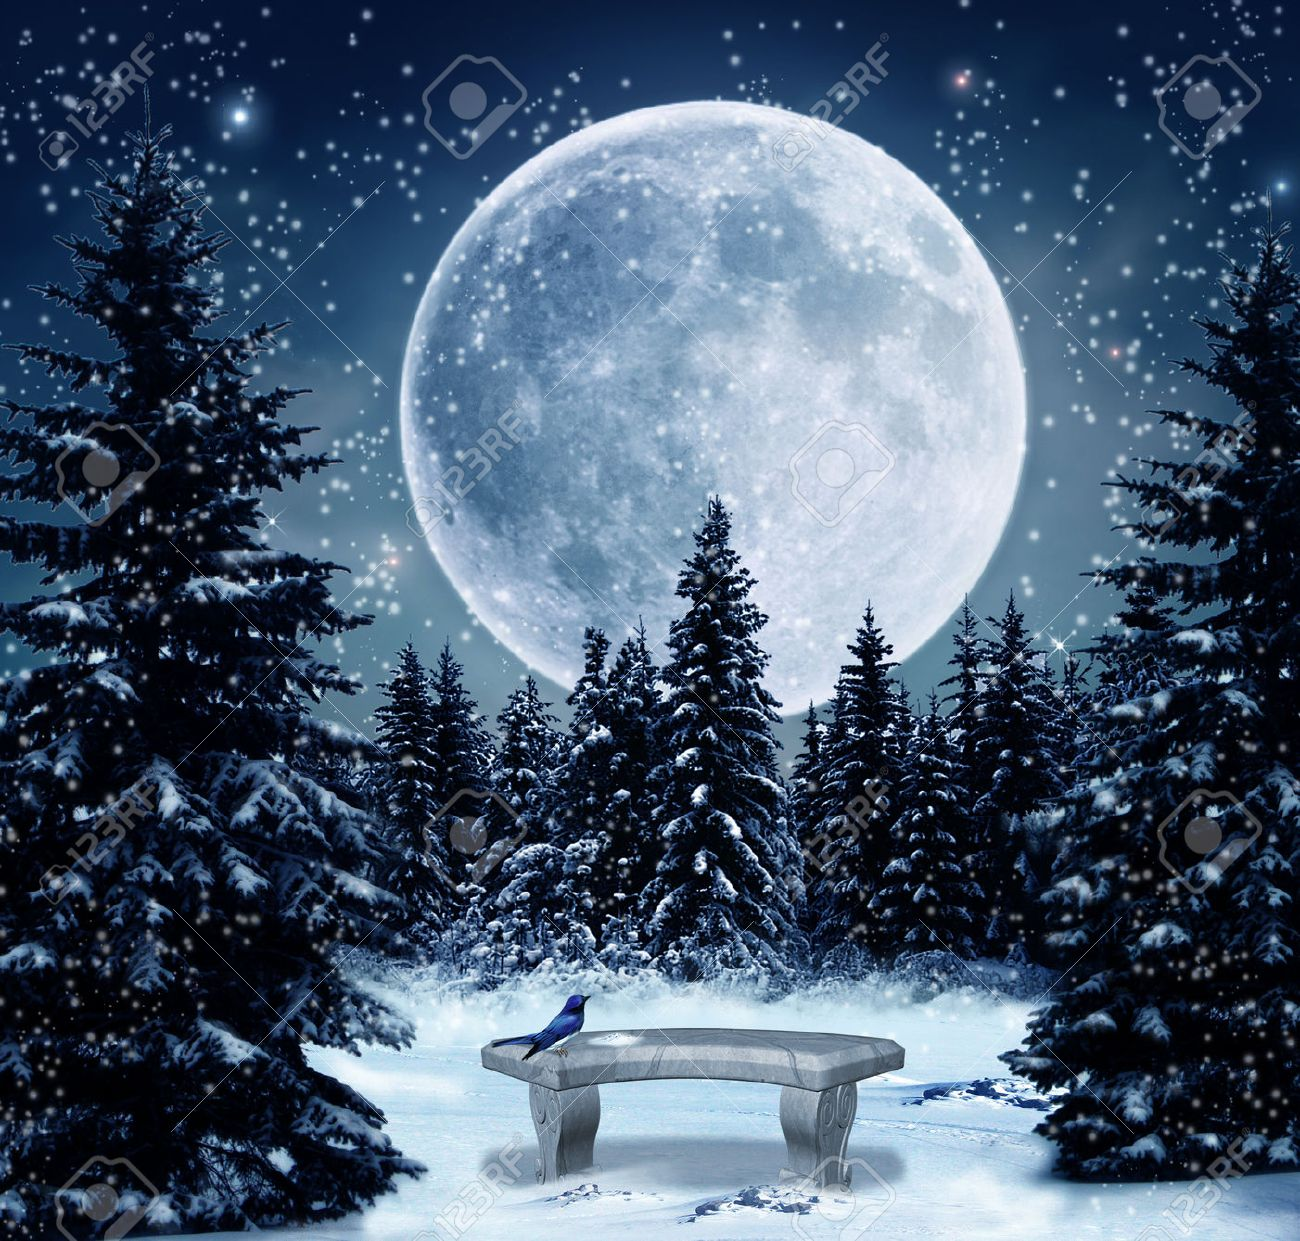 Winter night with a big full moon - 27613545